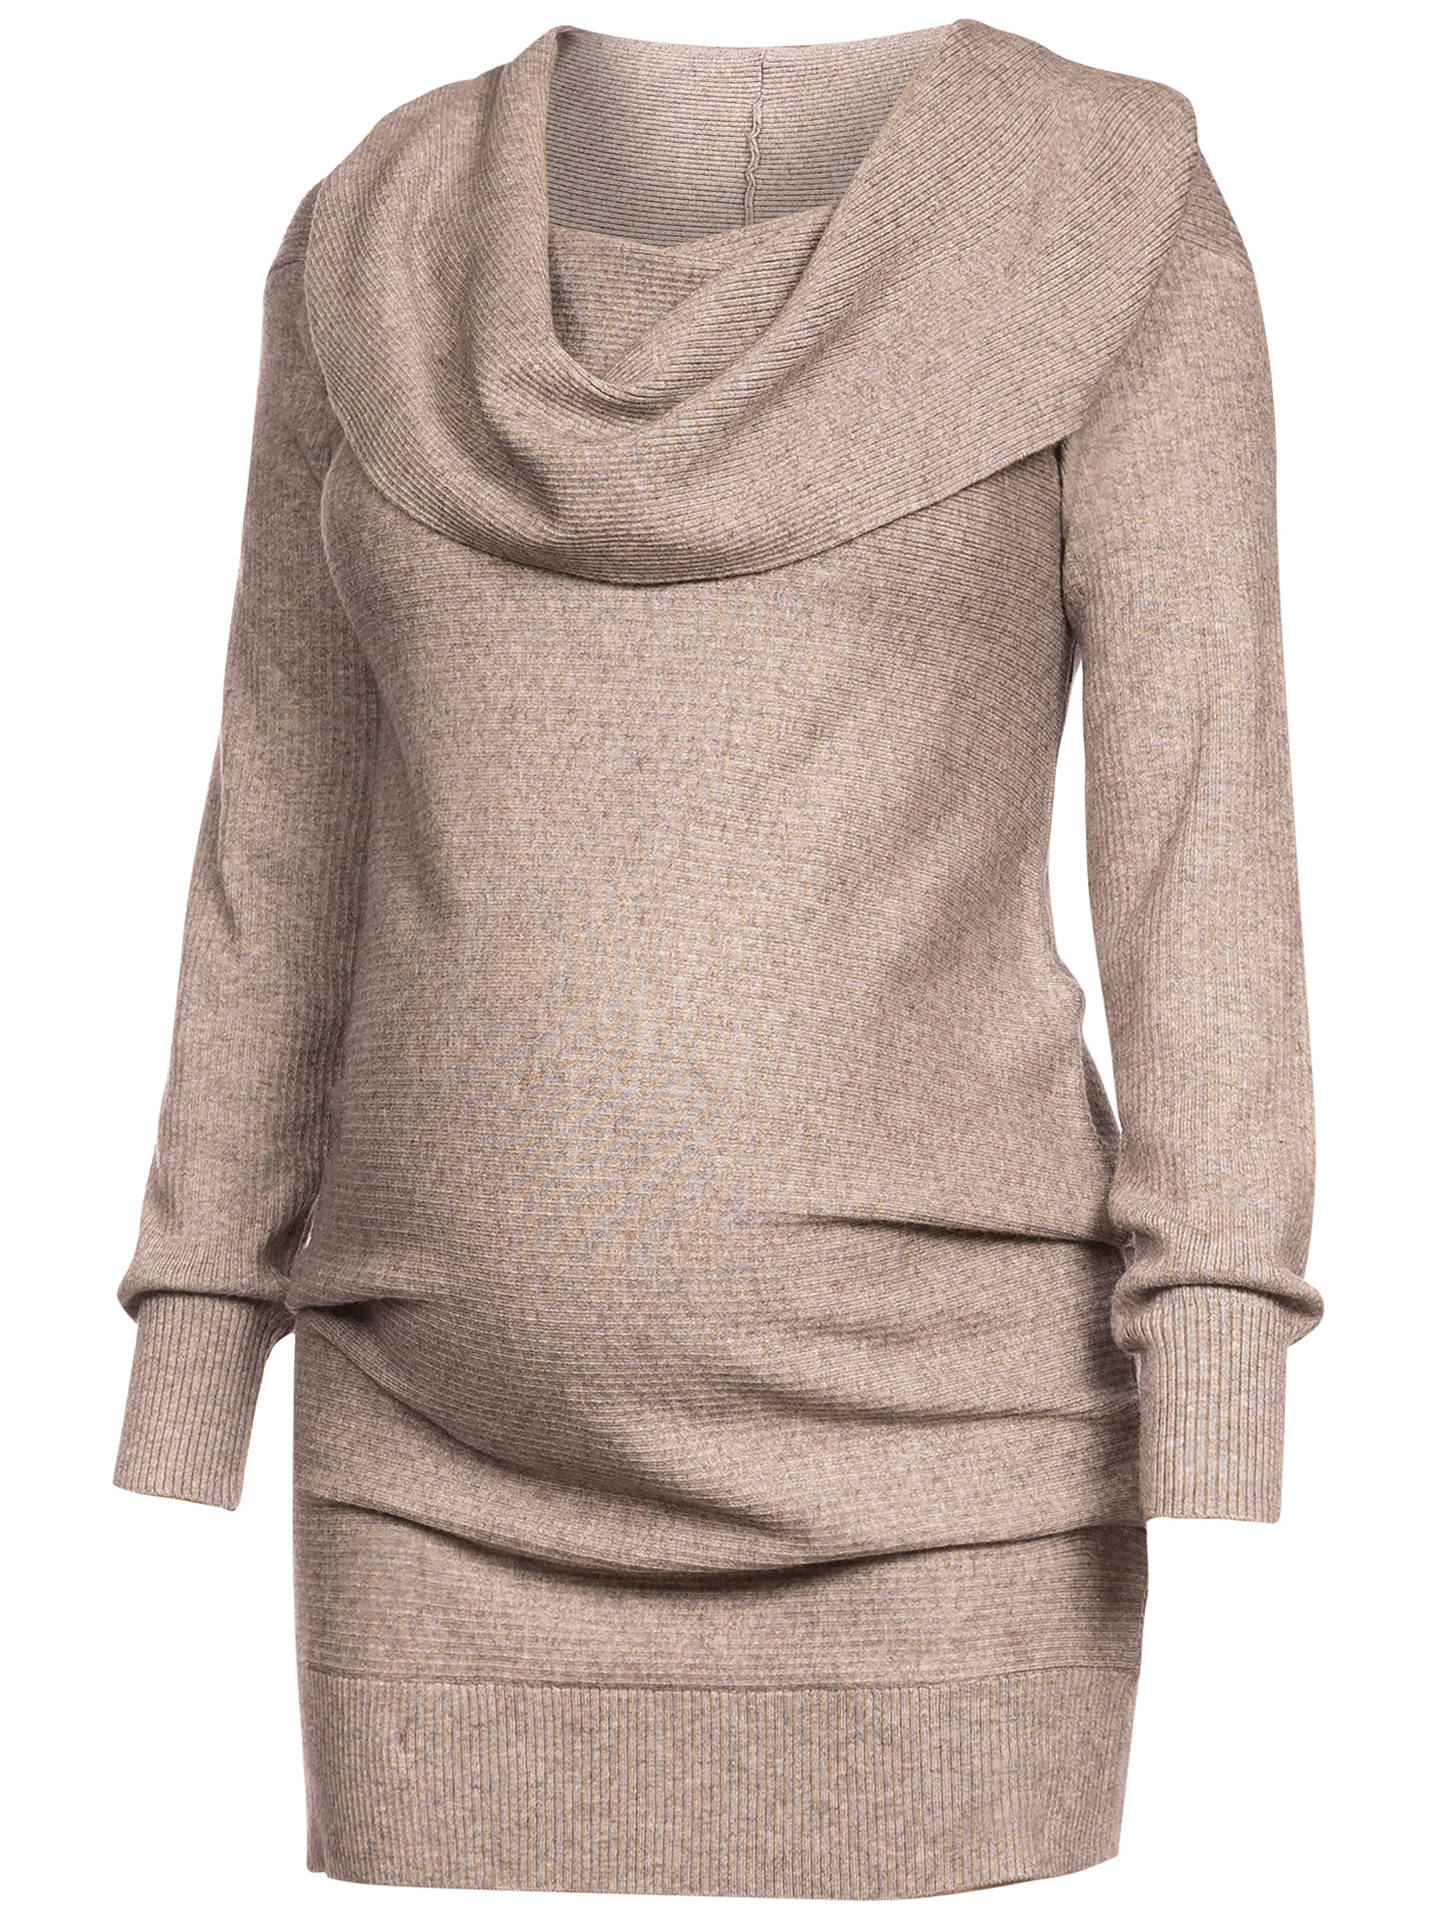 BuySéraphine Fantine Maternity Knit Tunic, Oatmeal, S Online at johnlewis.com